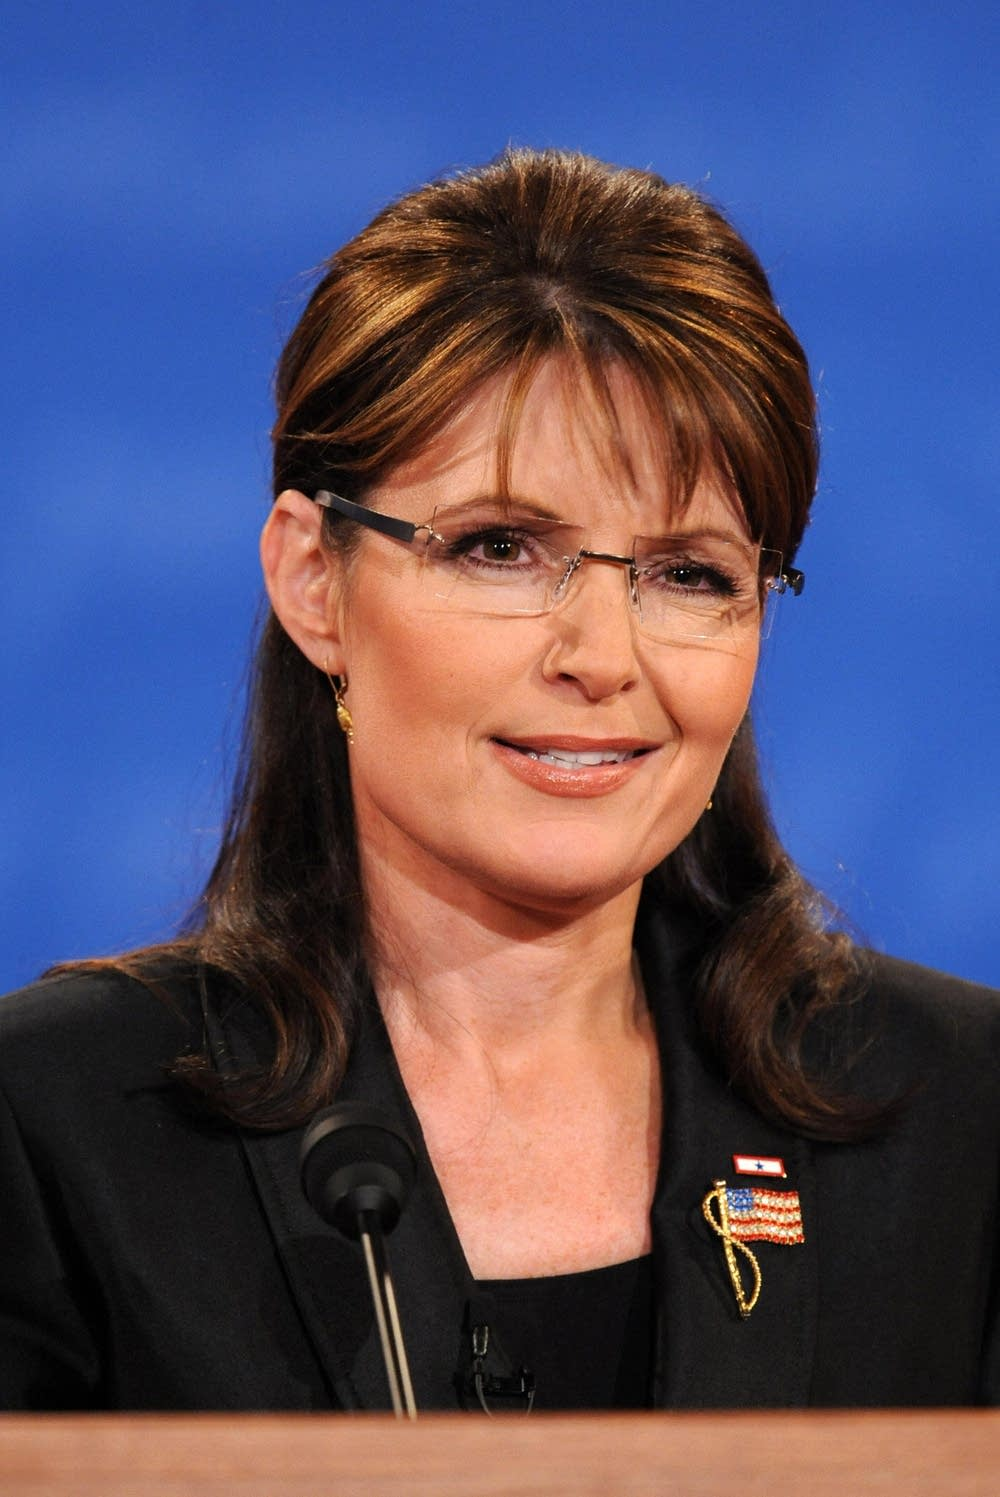 Republican Sarah Palin